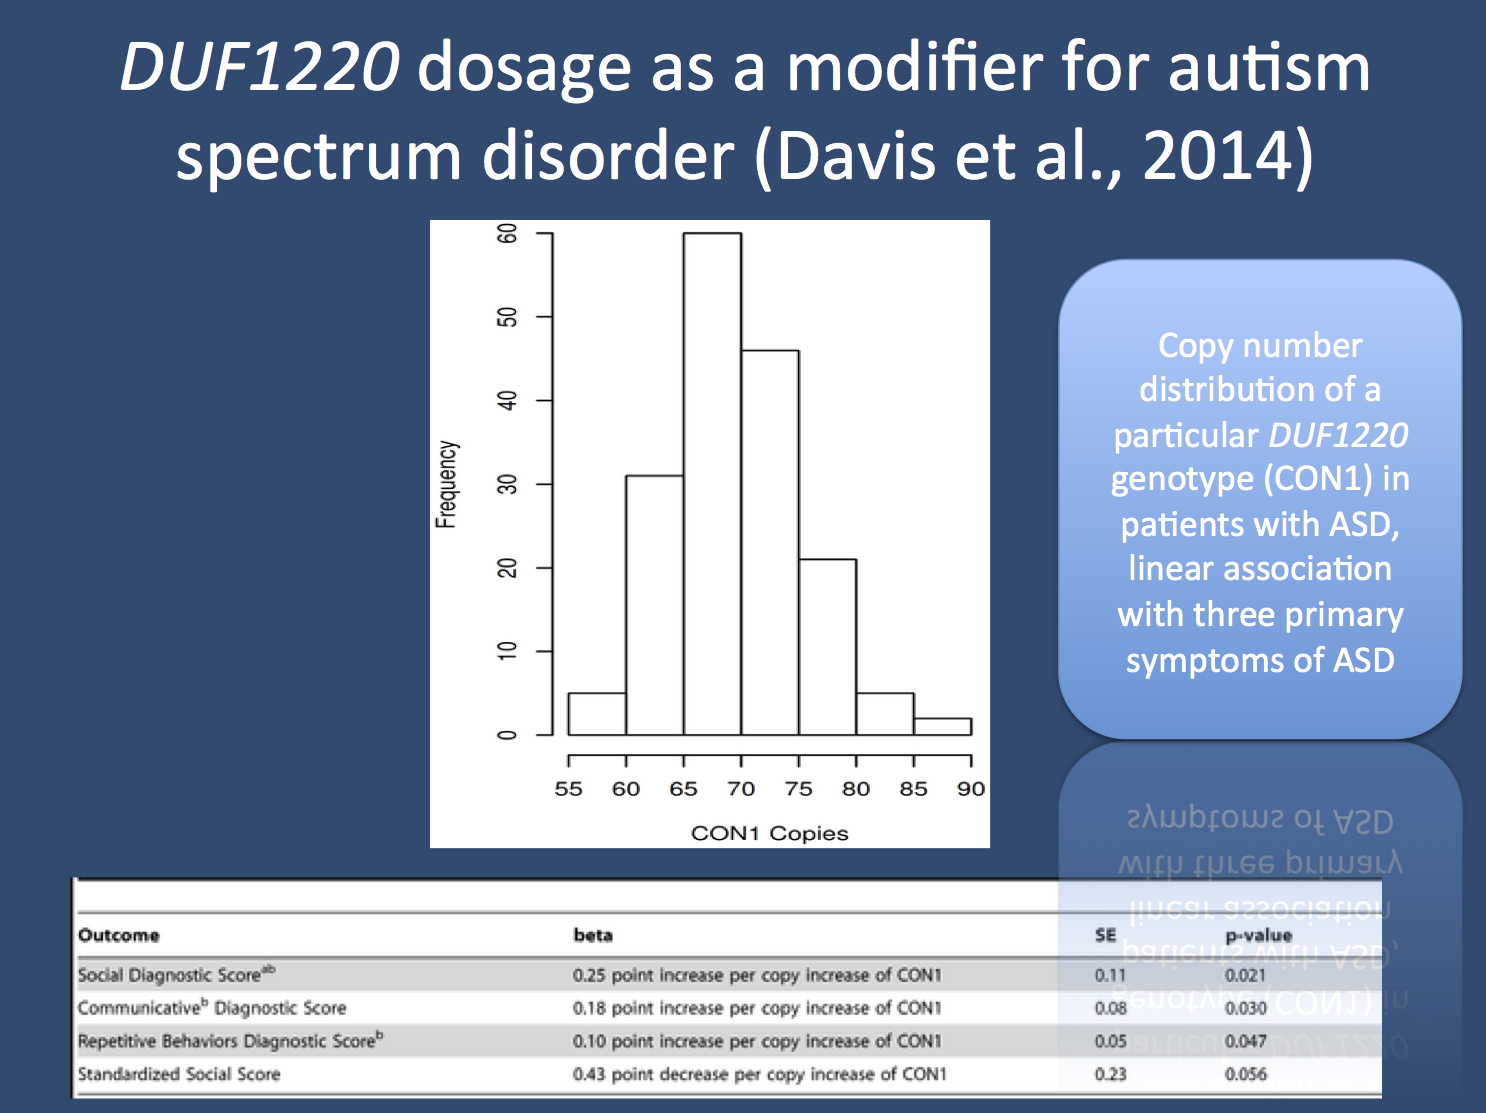 Figures from the publication by Davis and collaborators. DUF1220 dosage is distributed in patients with autism spectrum disorders (ASD) in an almost Gaussian fashion, which is not much different from what is expected in the general population. However, there is a linear correlation between DUF1220 dosage and various ASD-related features including measures for social deficits, communicative impairments, and repetitive behaviors (figure adapted from the publication by Davis and collaborators under a Creative Commons License).